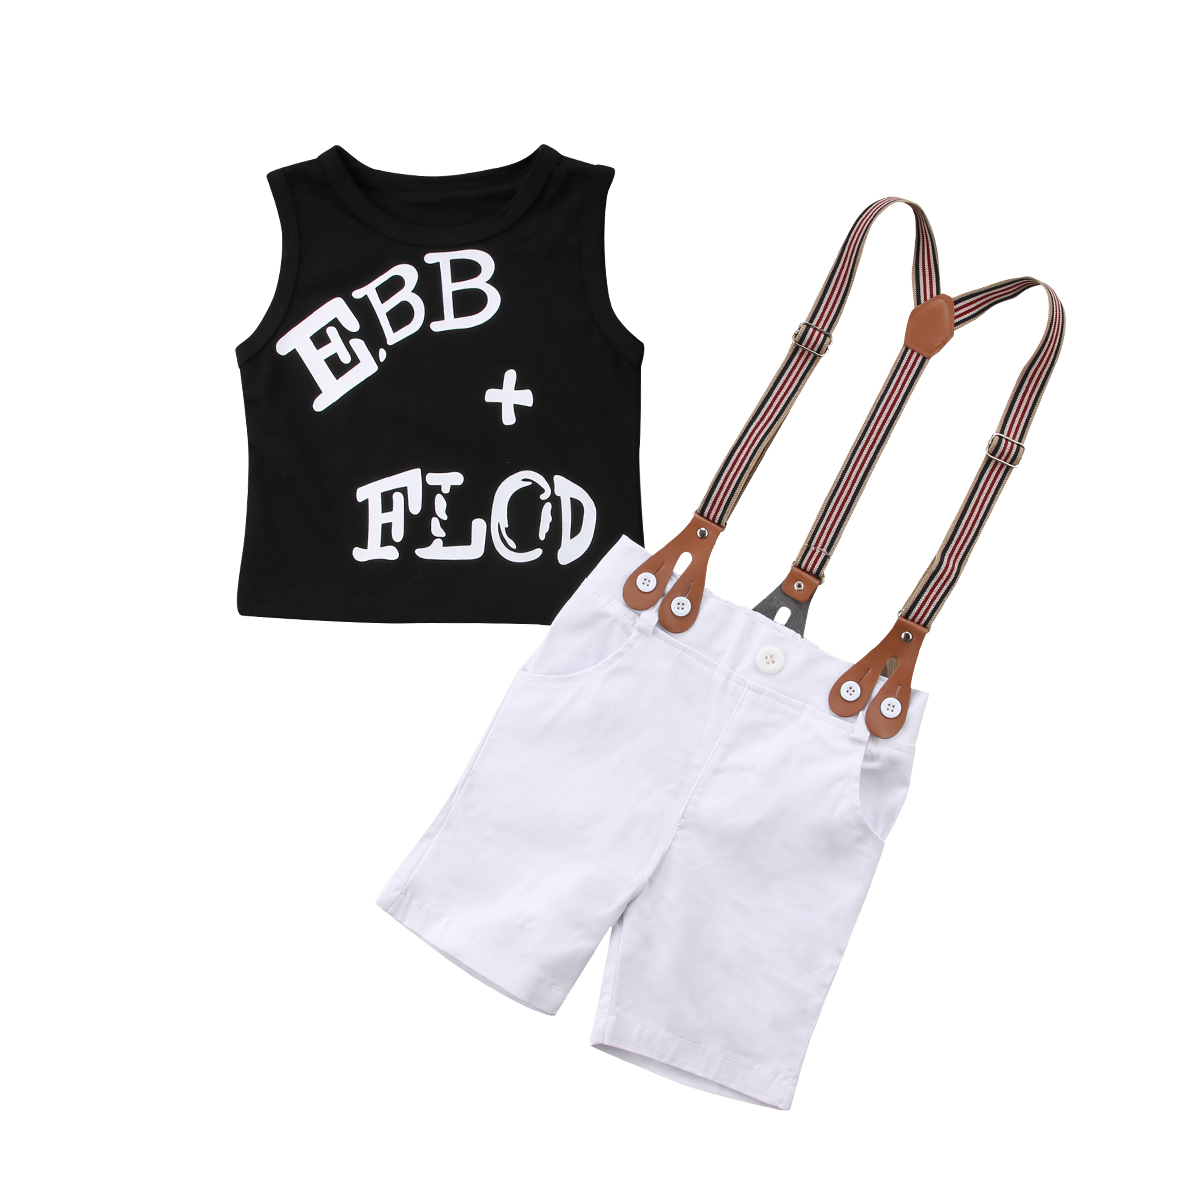 Pudcoco 2pcs Toddler Baby Boys Clothes Set Black Vest Tops +pants Overalls outfits Newborn Infant Baby Boys Summer Clothes ...